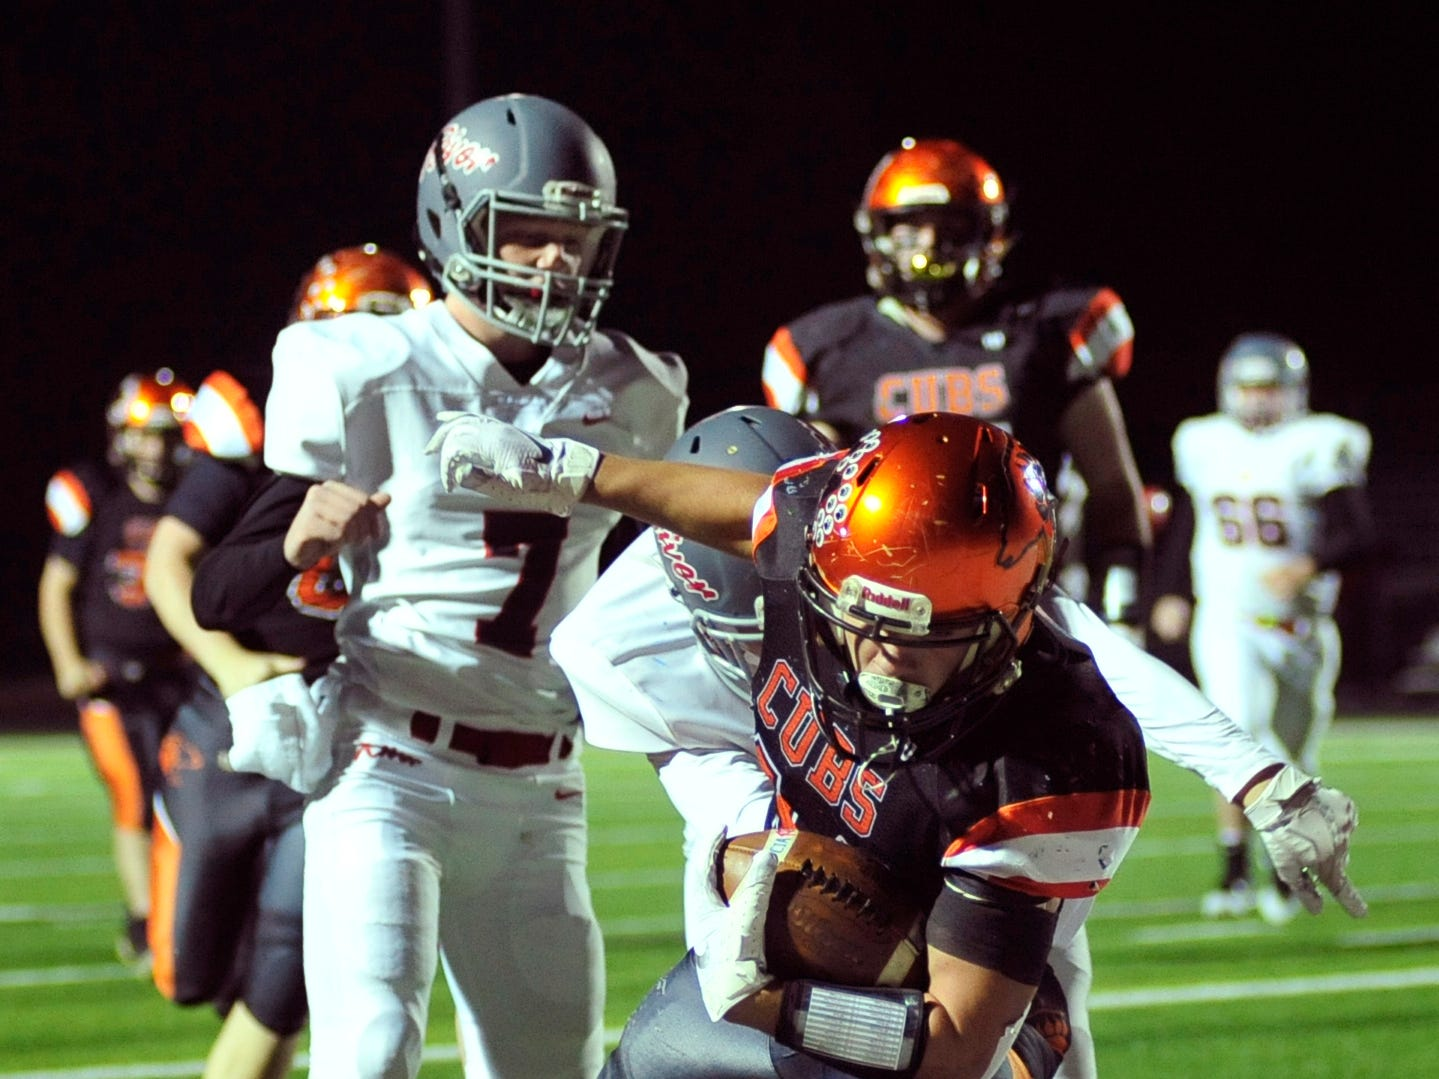 Lucas' Jeb Grover scores a touchdown while playing against River while playing at Madison on Saturday night.